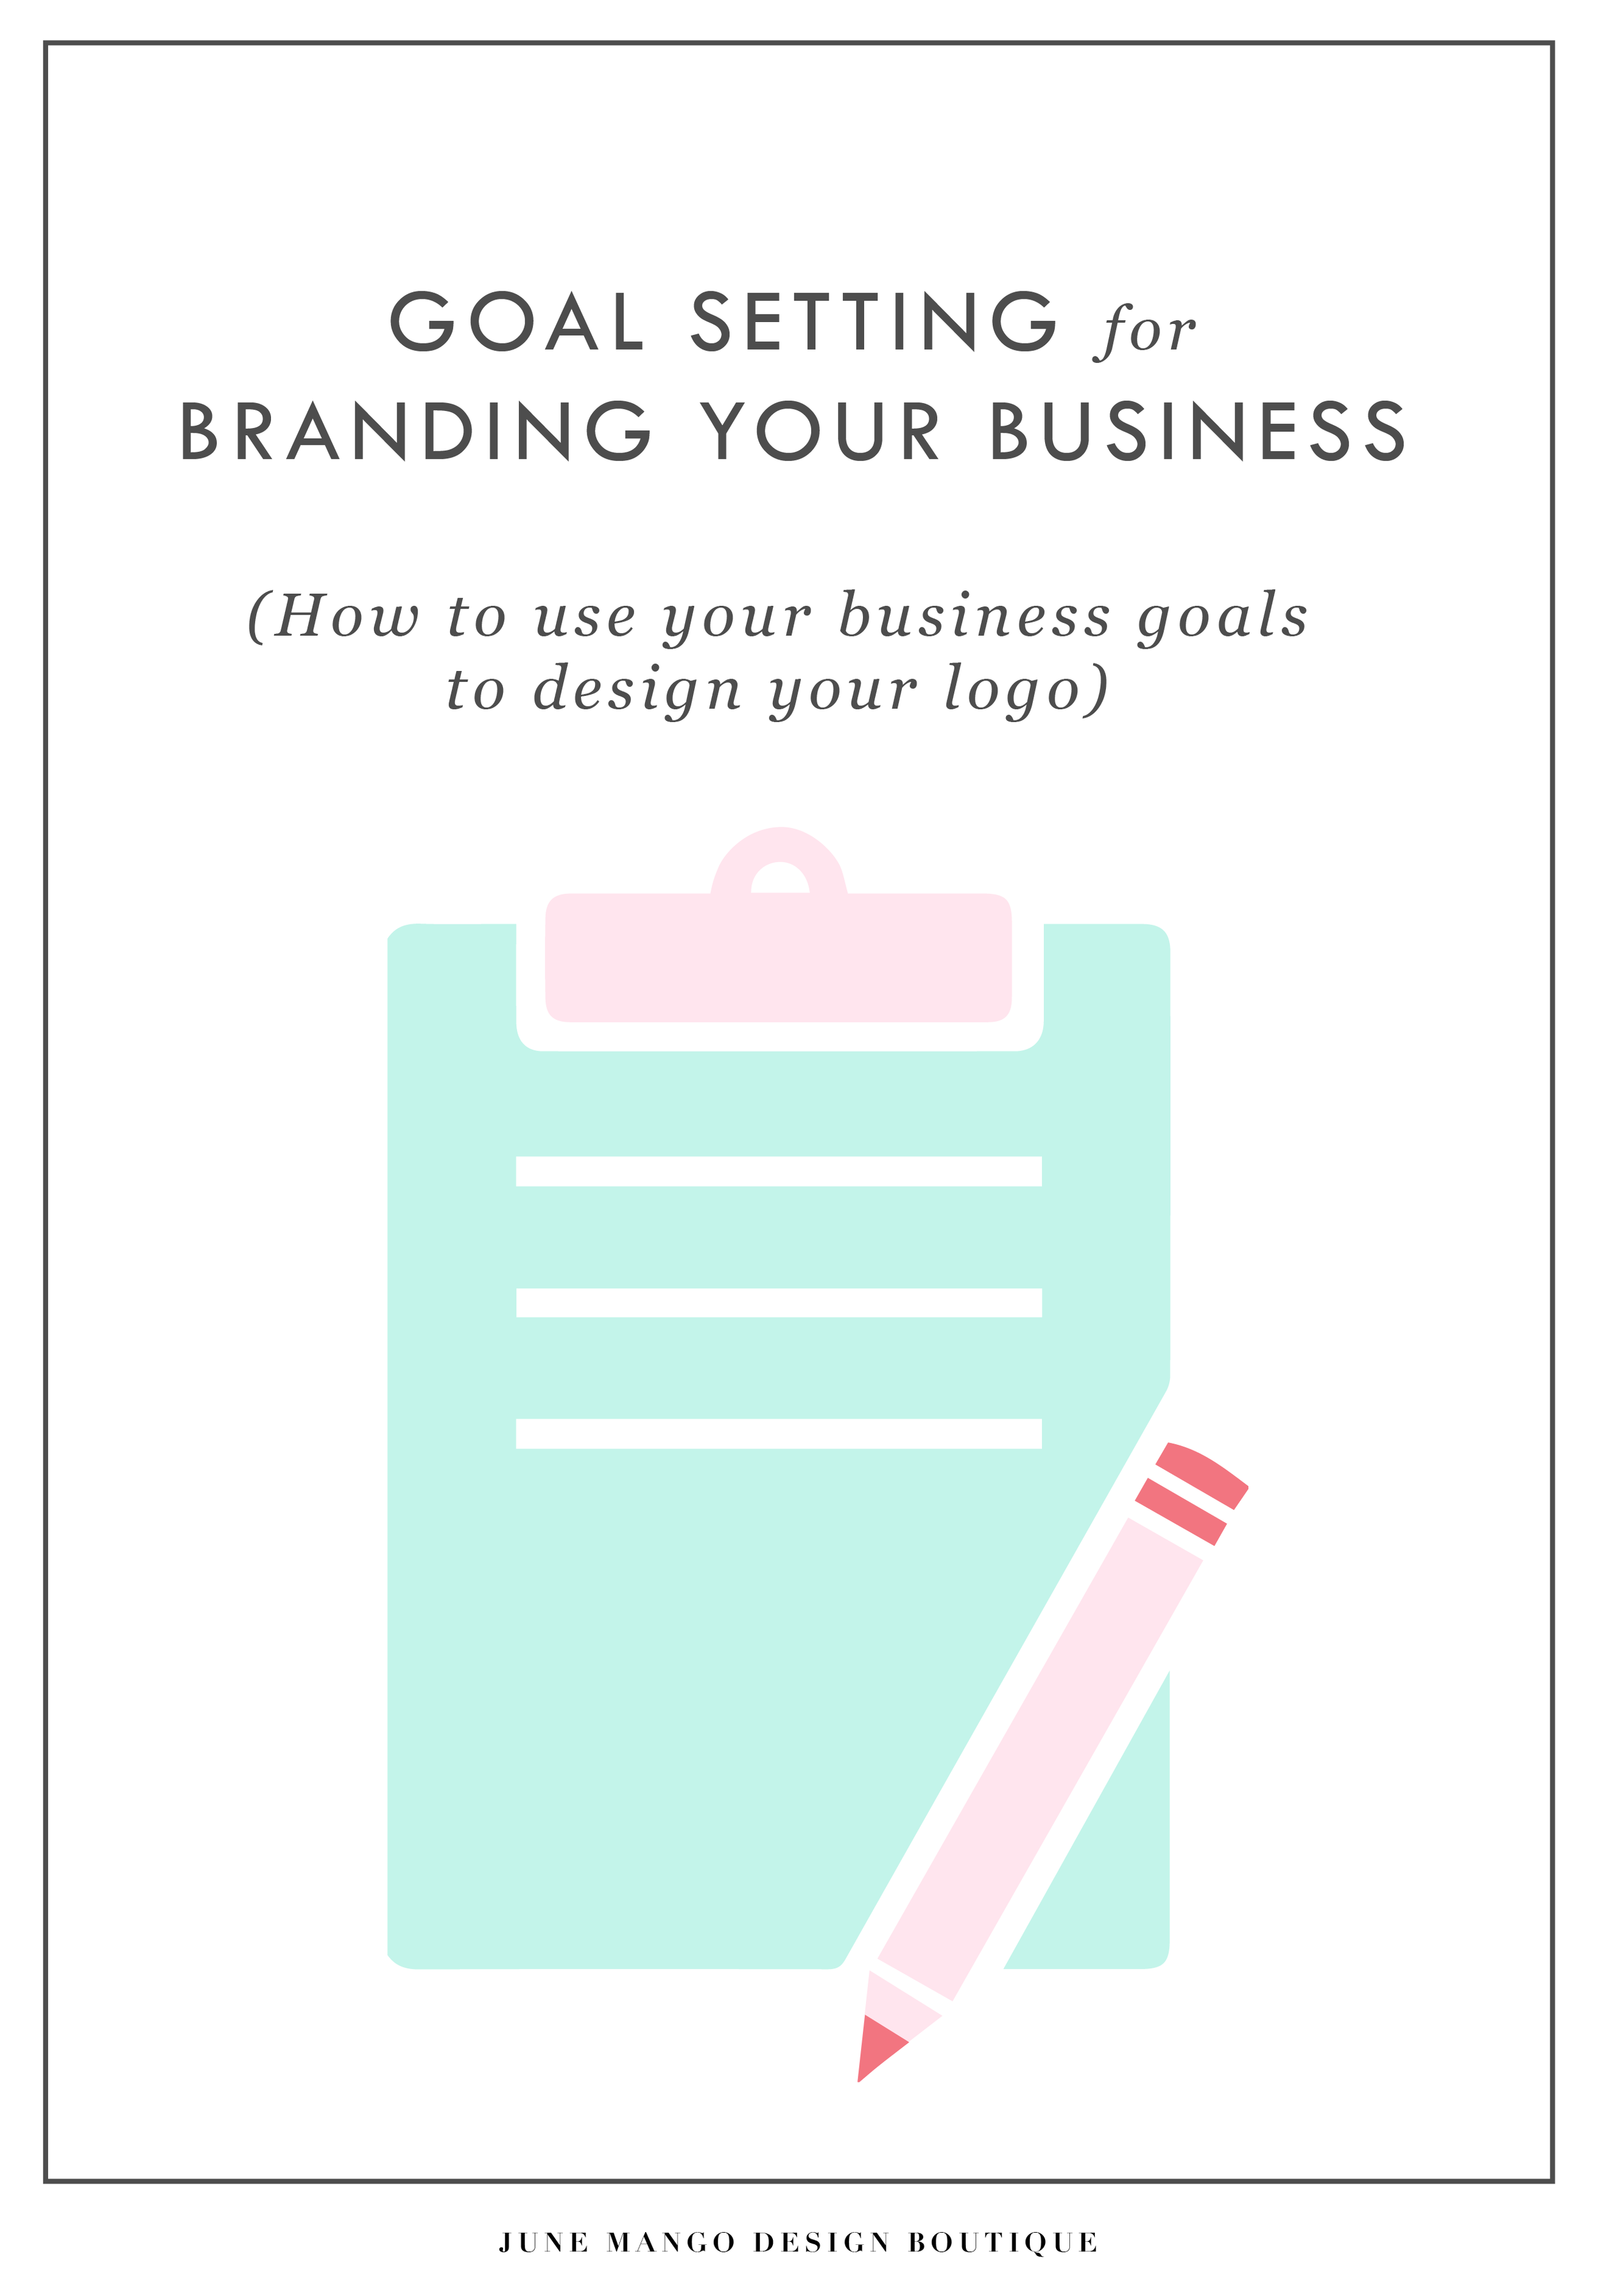 Goal-Setting-for-branding-your-business-logo-05.png